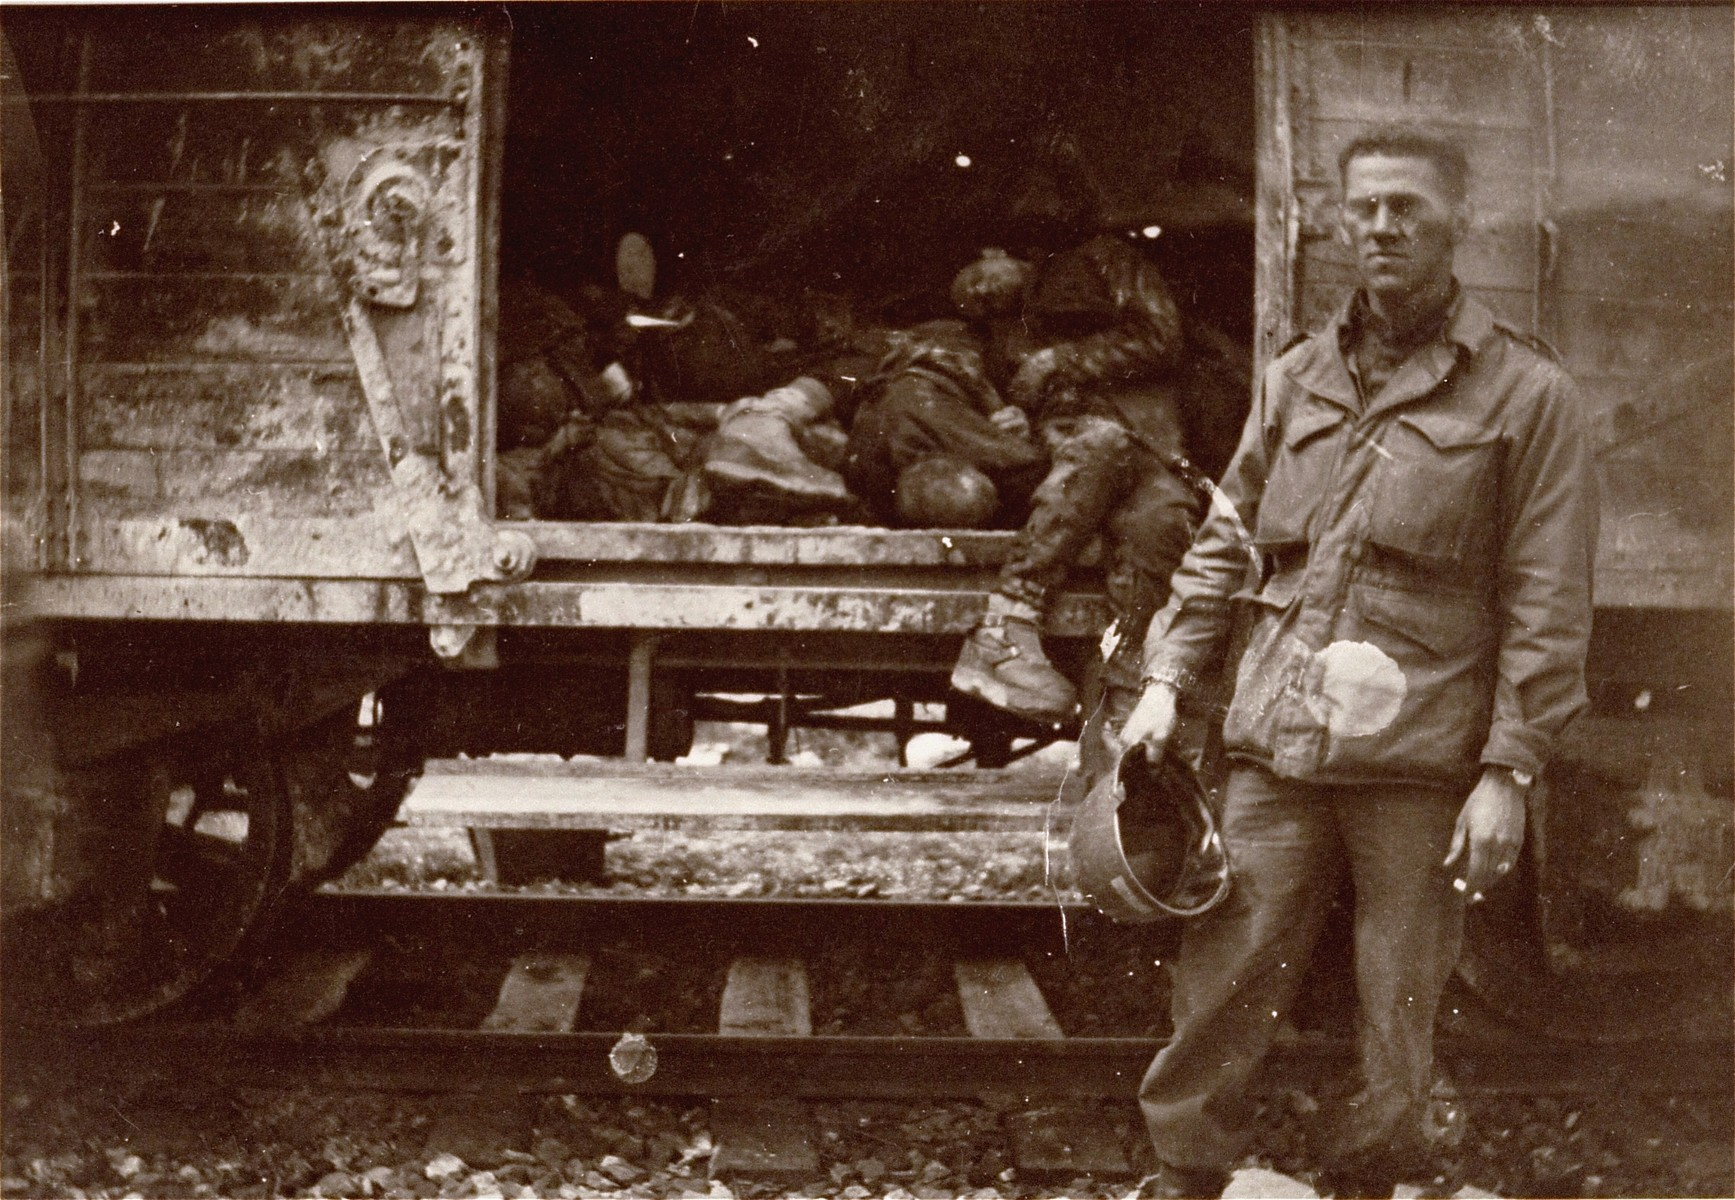 An American soldier poses next to one of the open railcars of the Dachau death train.